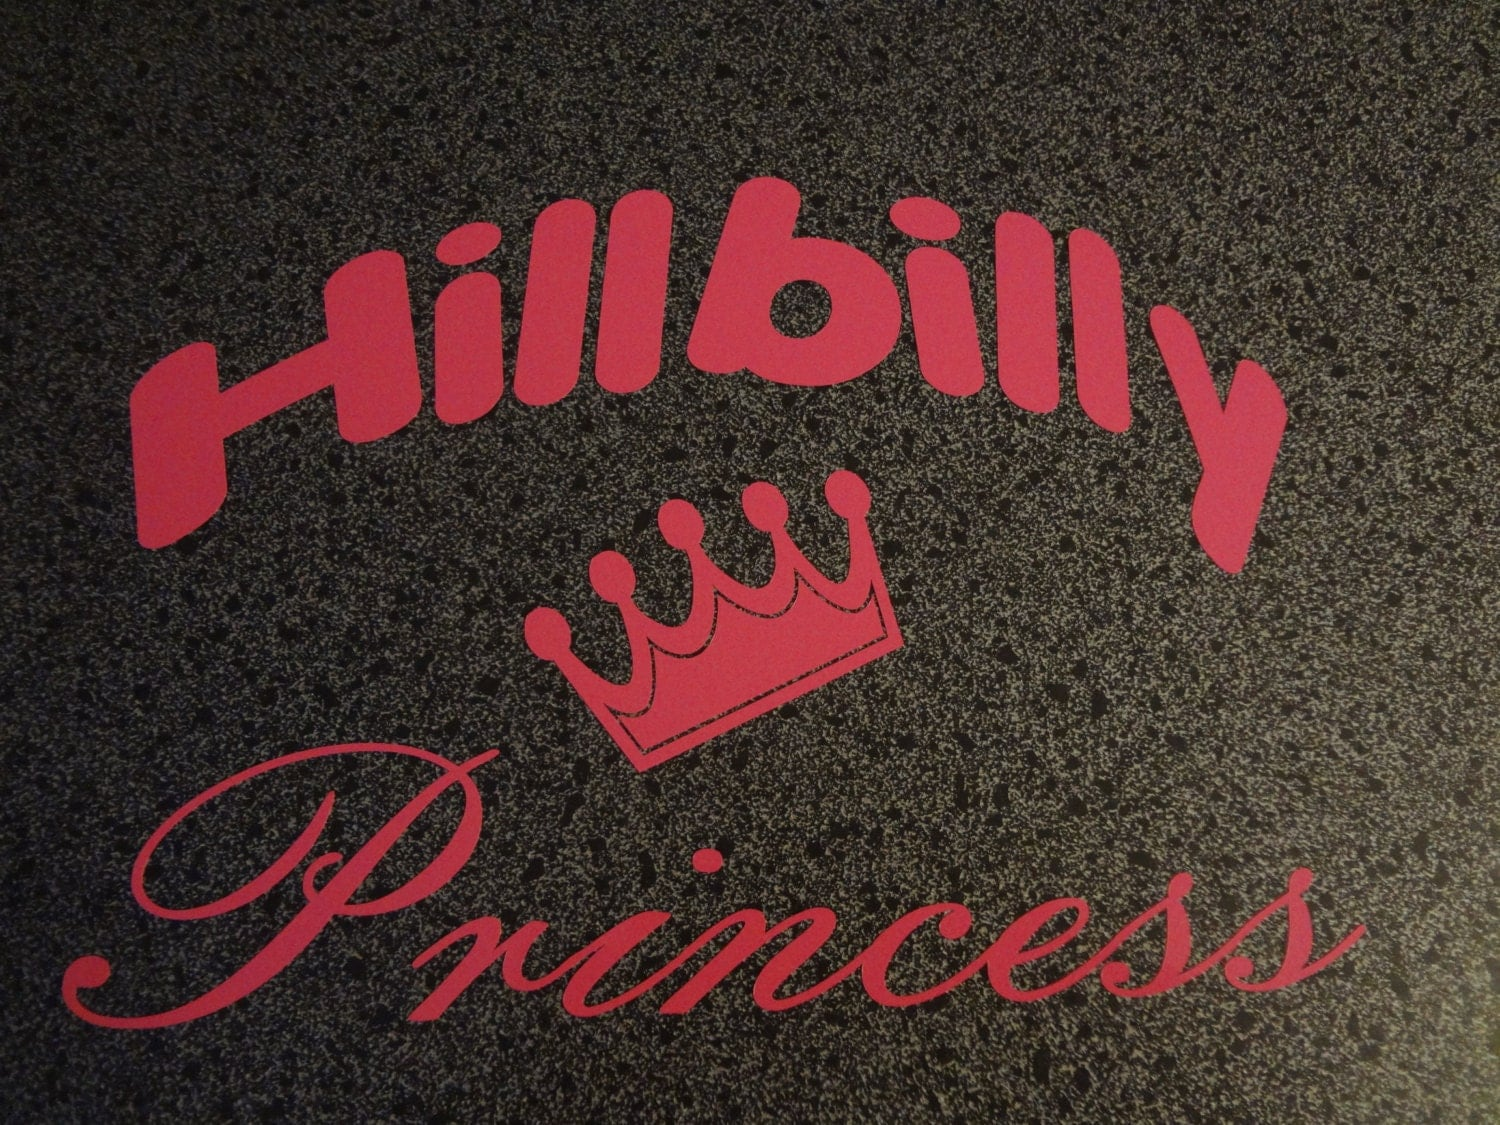 Hillbilly Princess Window Decal Redneck Truck Car Minivan - Redneck window decals for trucks